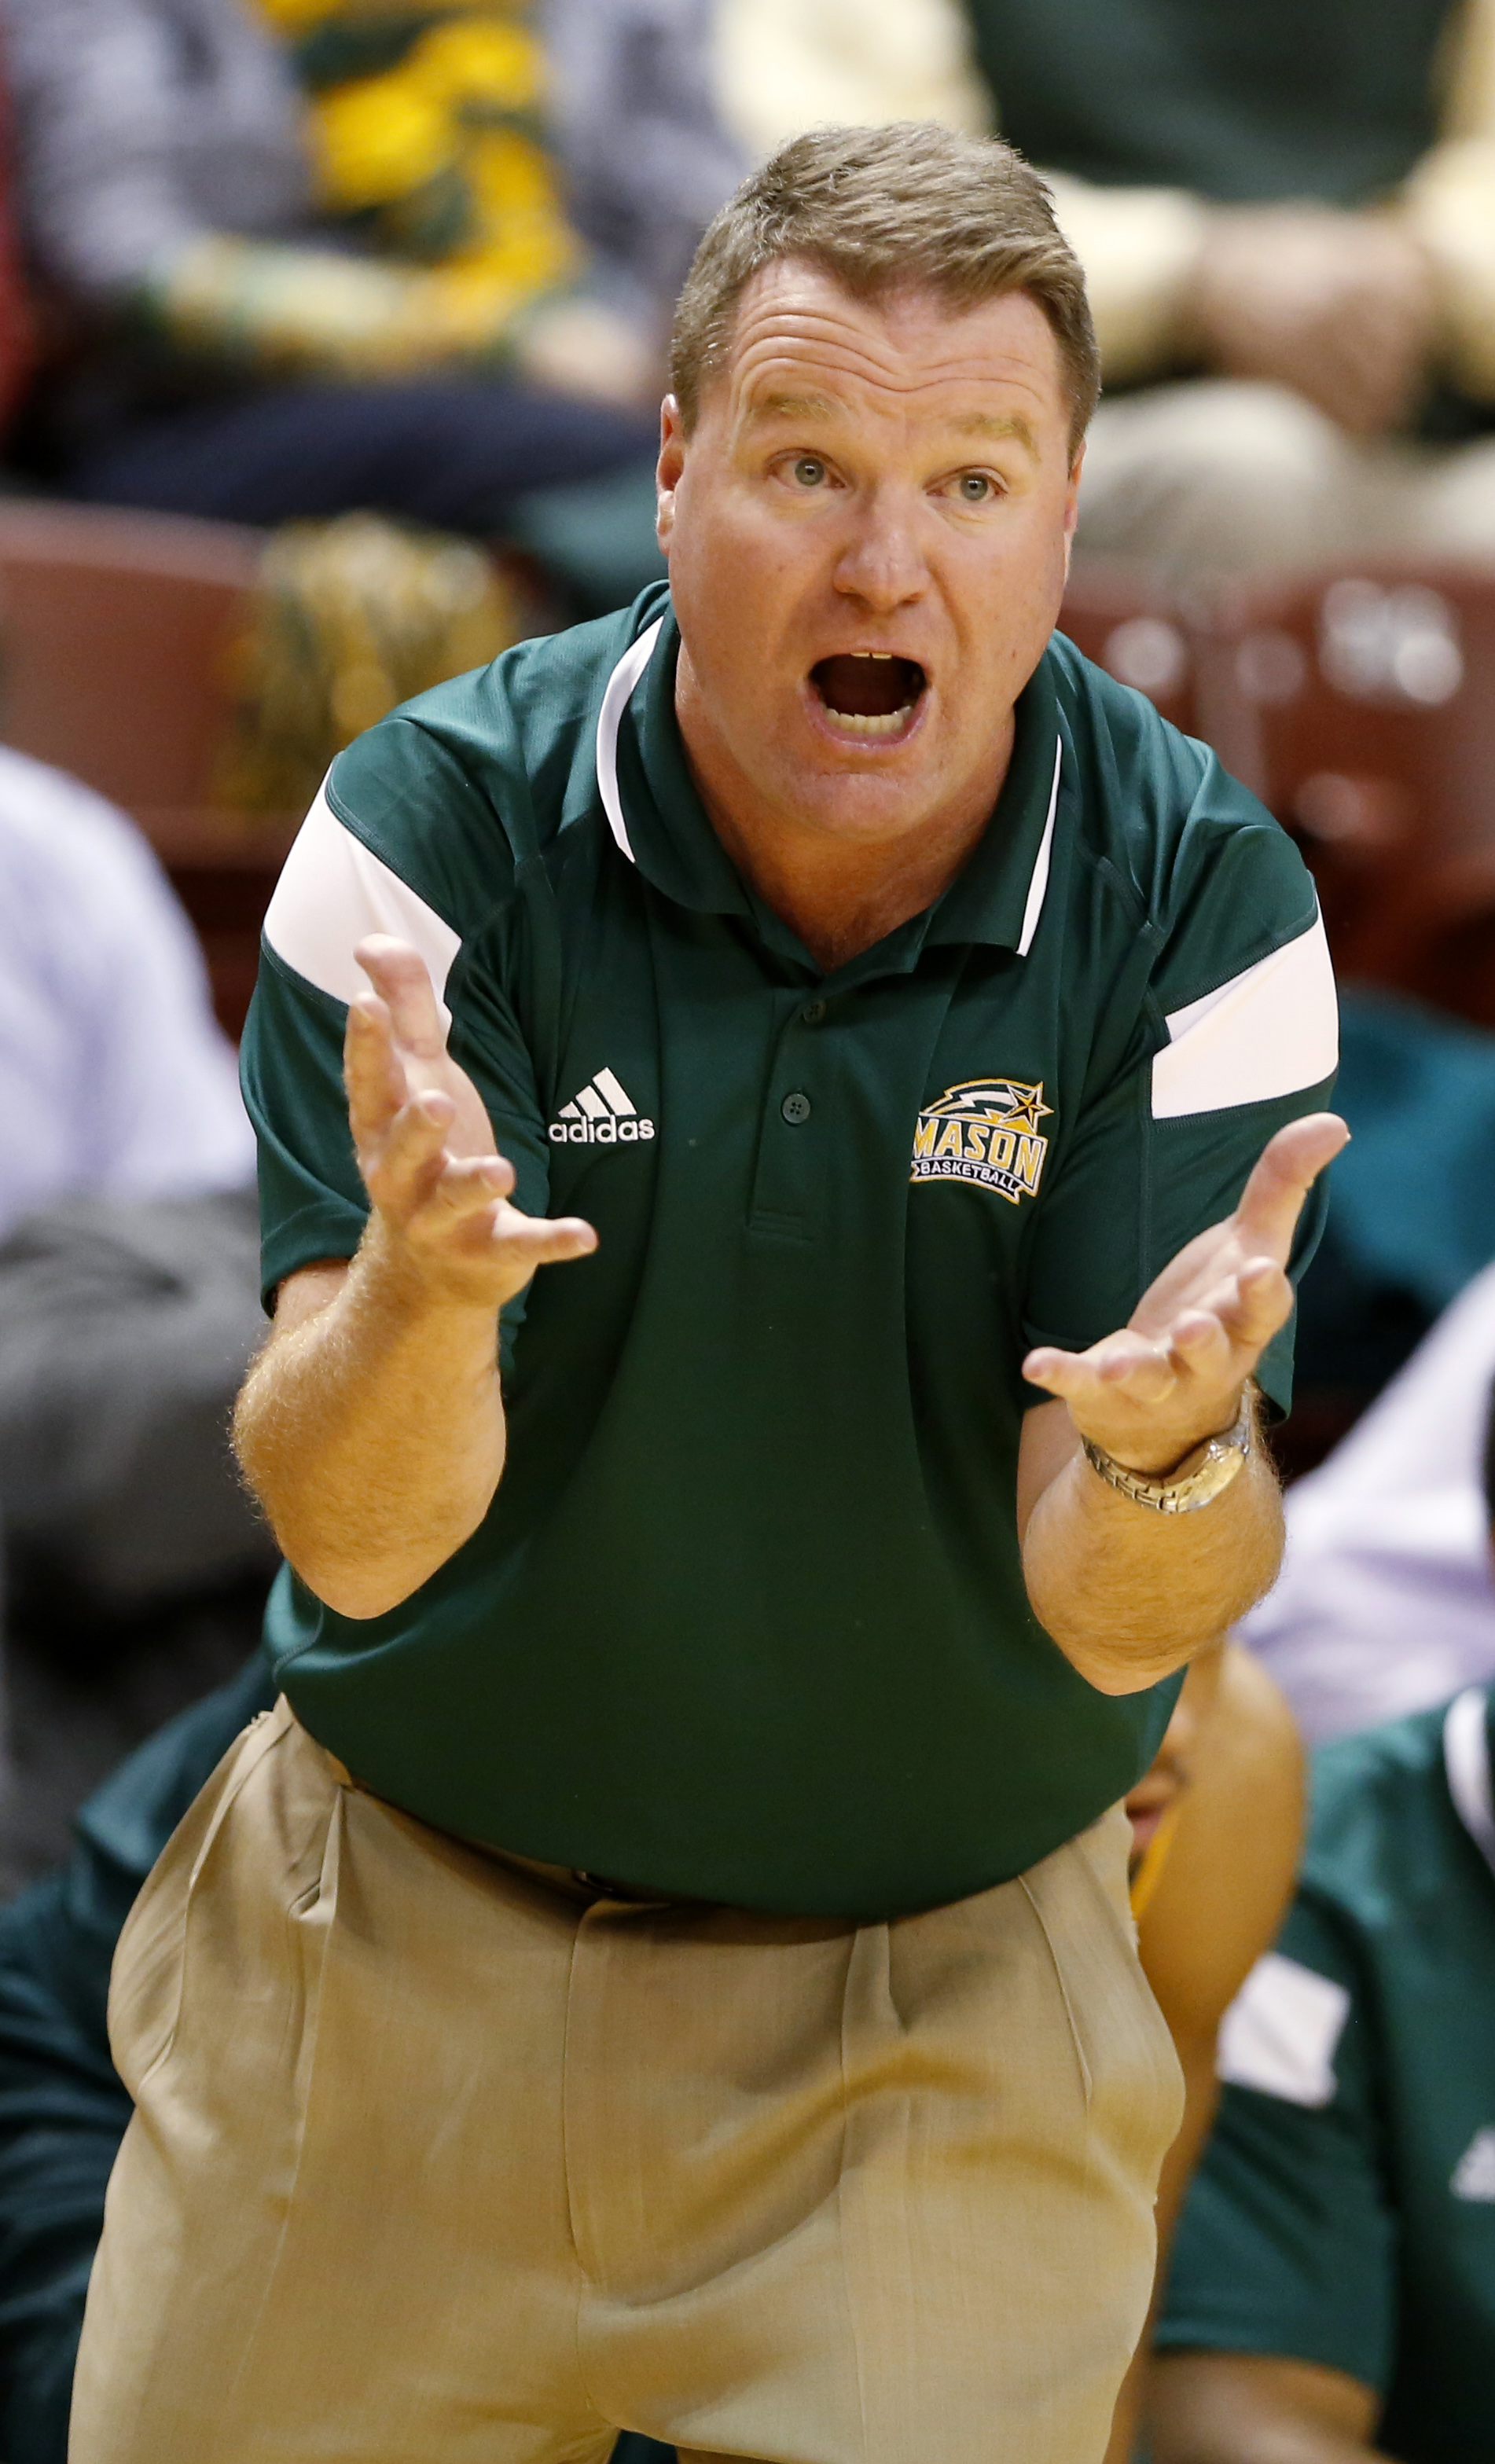 George Mason coach Dave Paulsen shouts to his players during the first half against Virginia in an NCAA college basketball game at the Charleston Classic, Sunday Nov. 22, 2015, in Charleston, S.C. (AP Photo/Mic Smith)